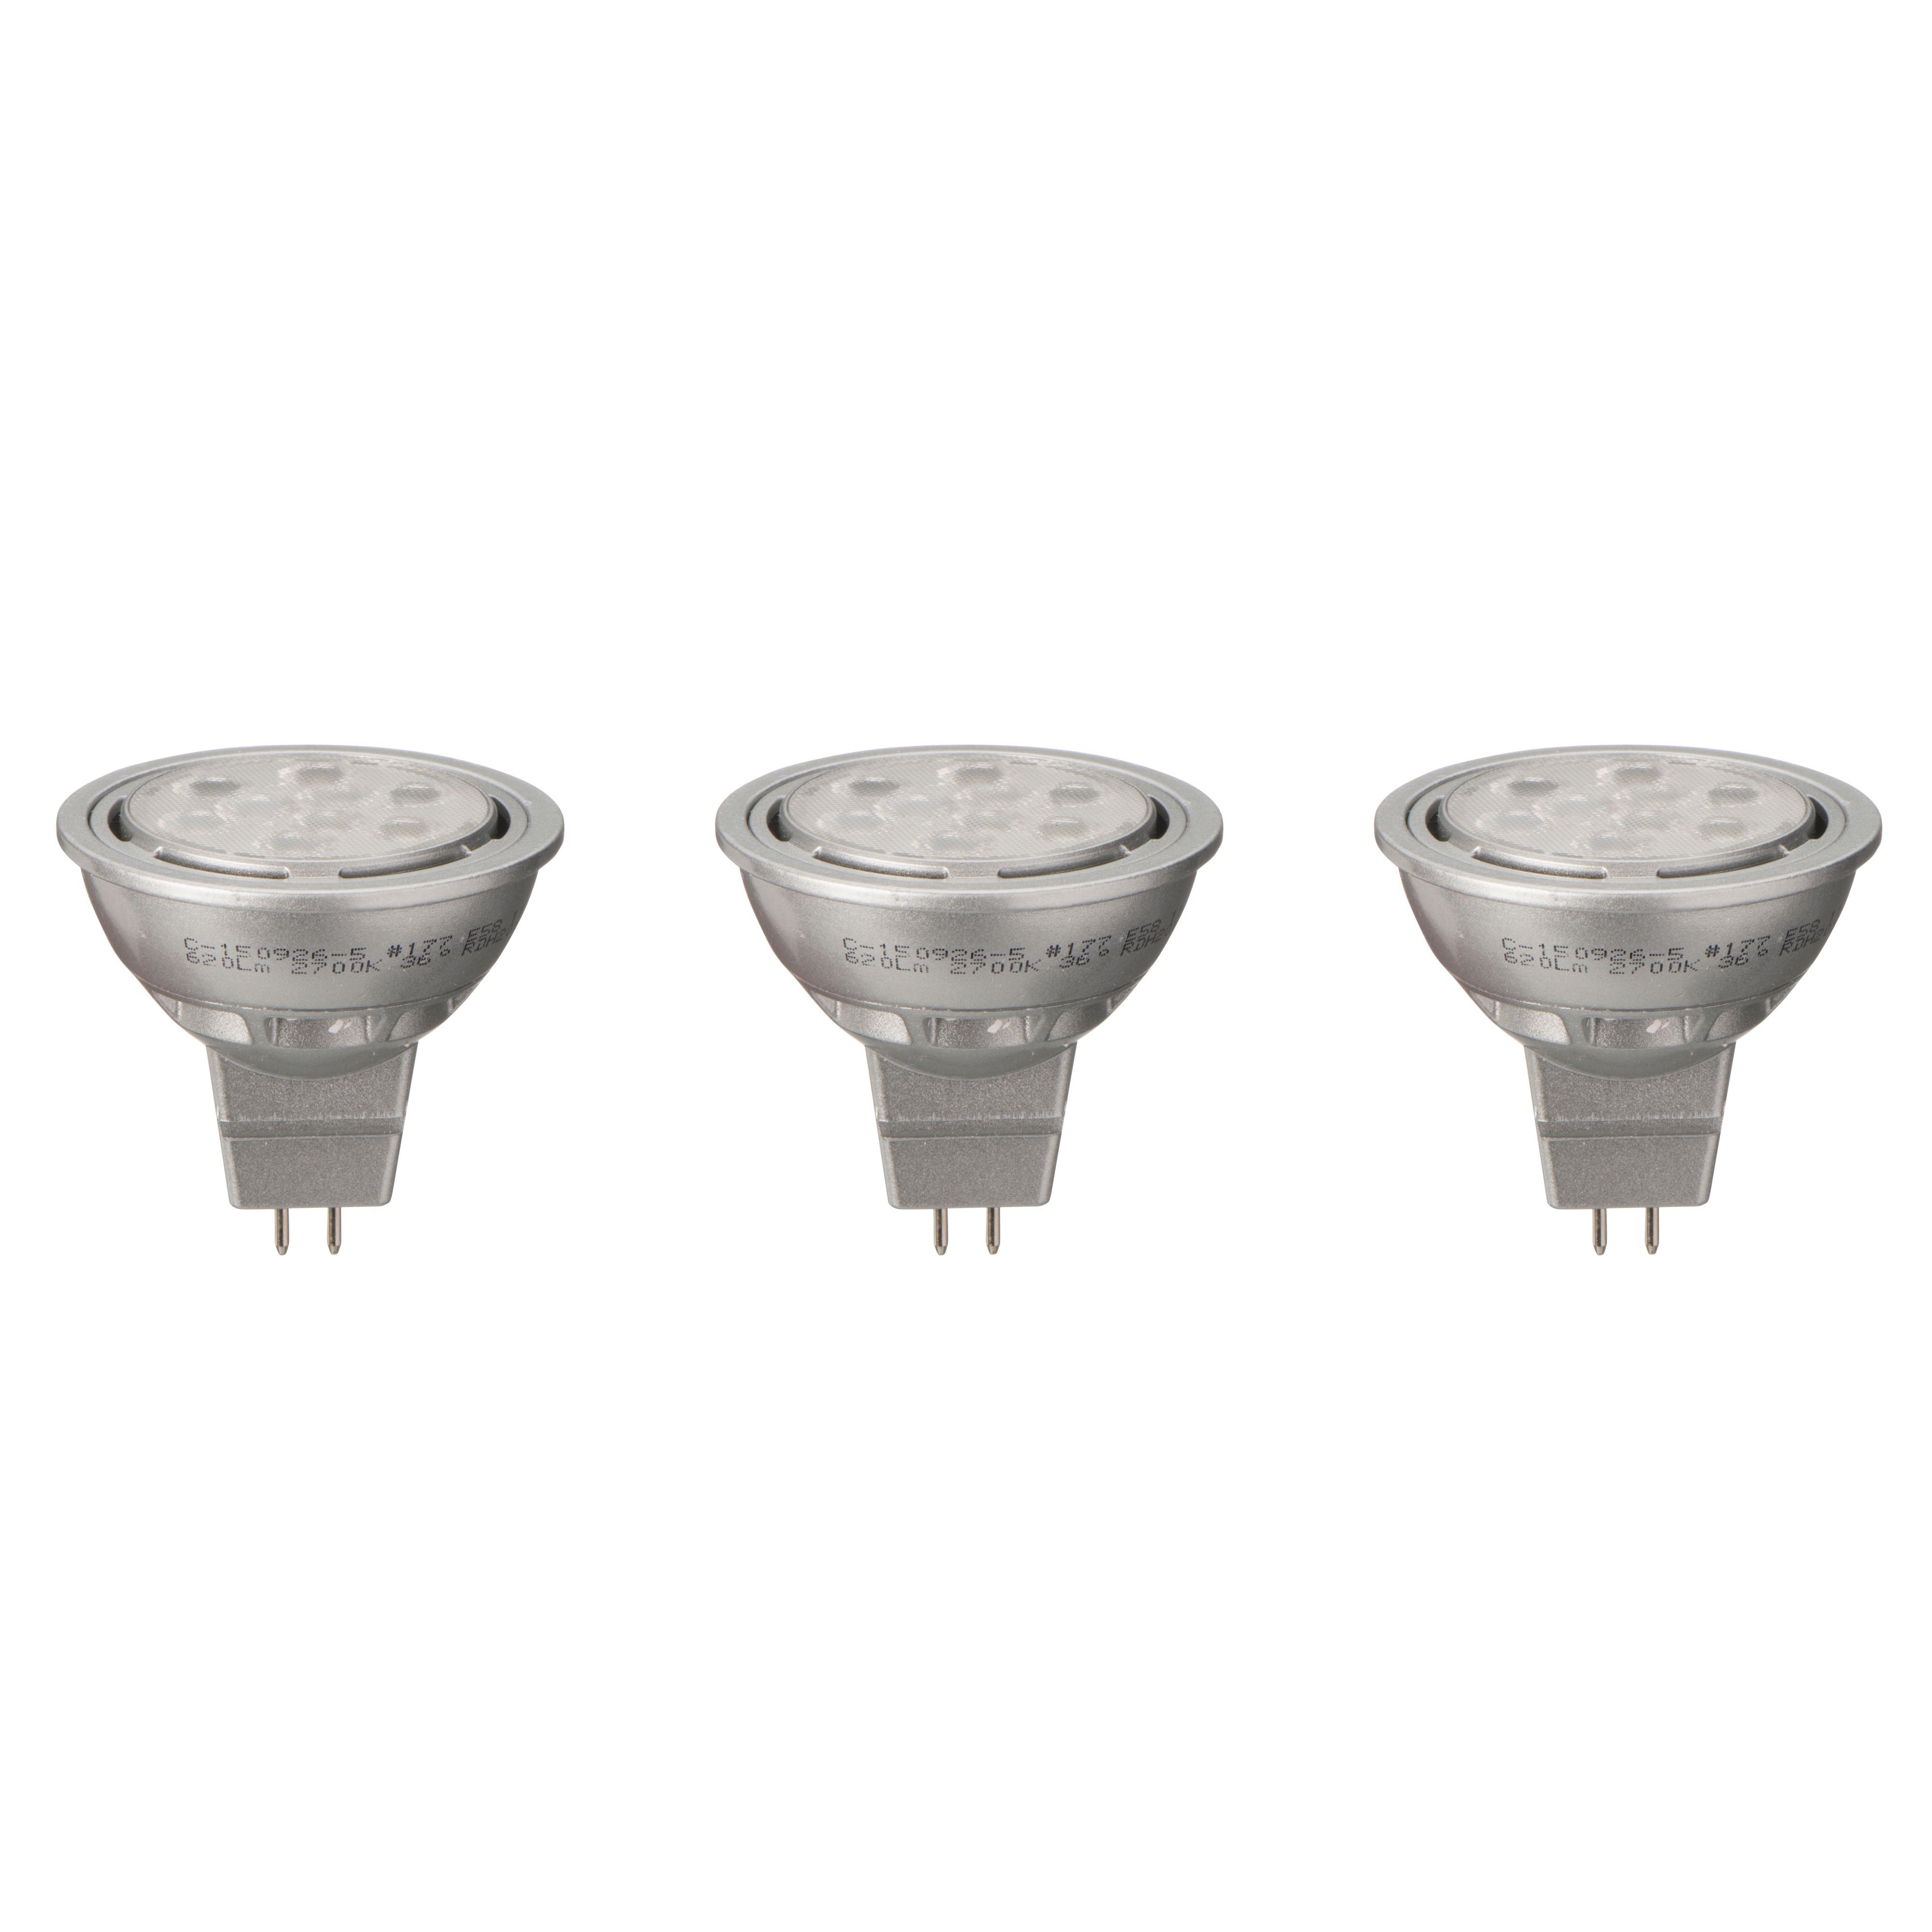 Diall Gu5.3 Mr16 621lm Led Dimmable Reflector Light Bulb, Pack Of 3